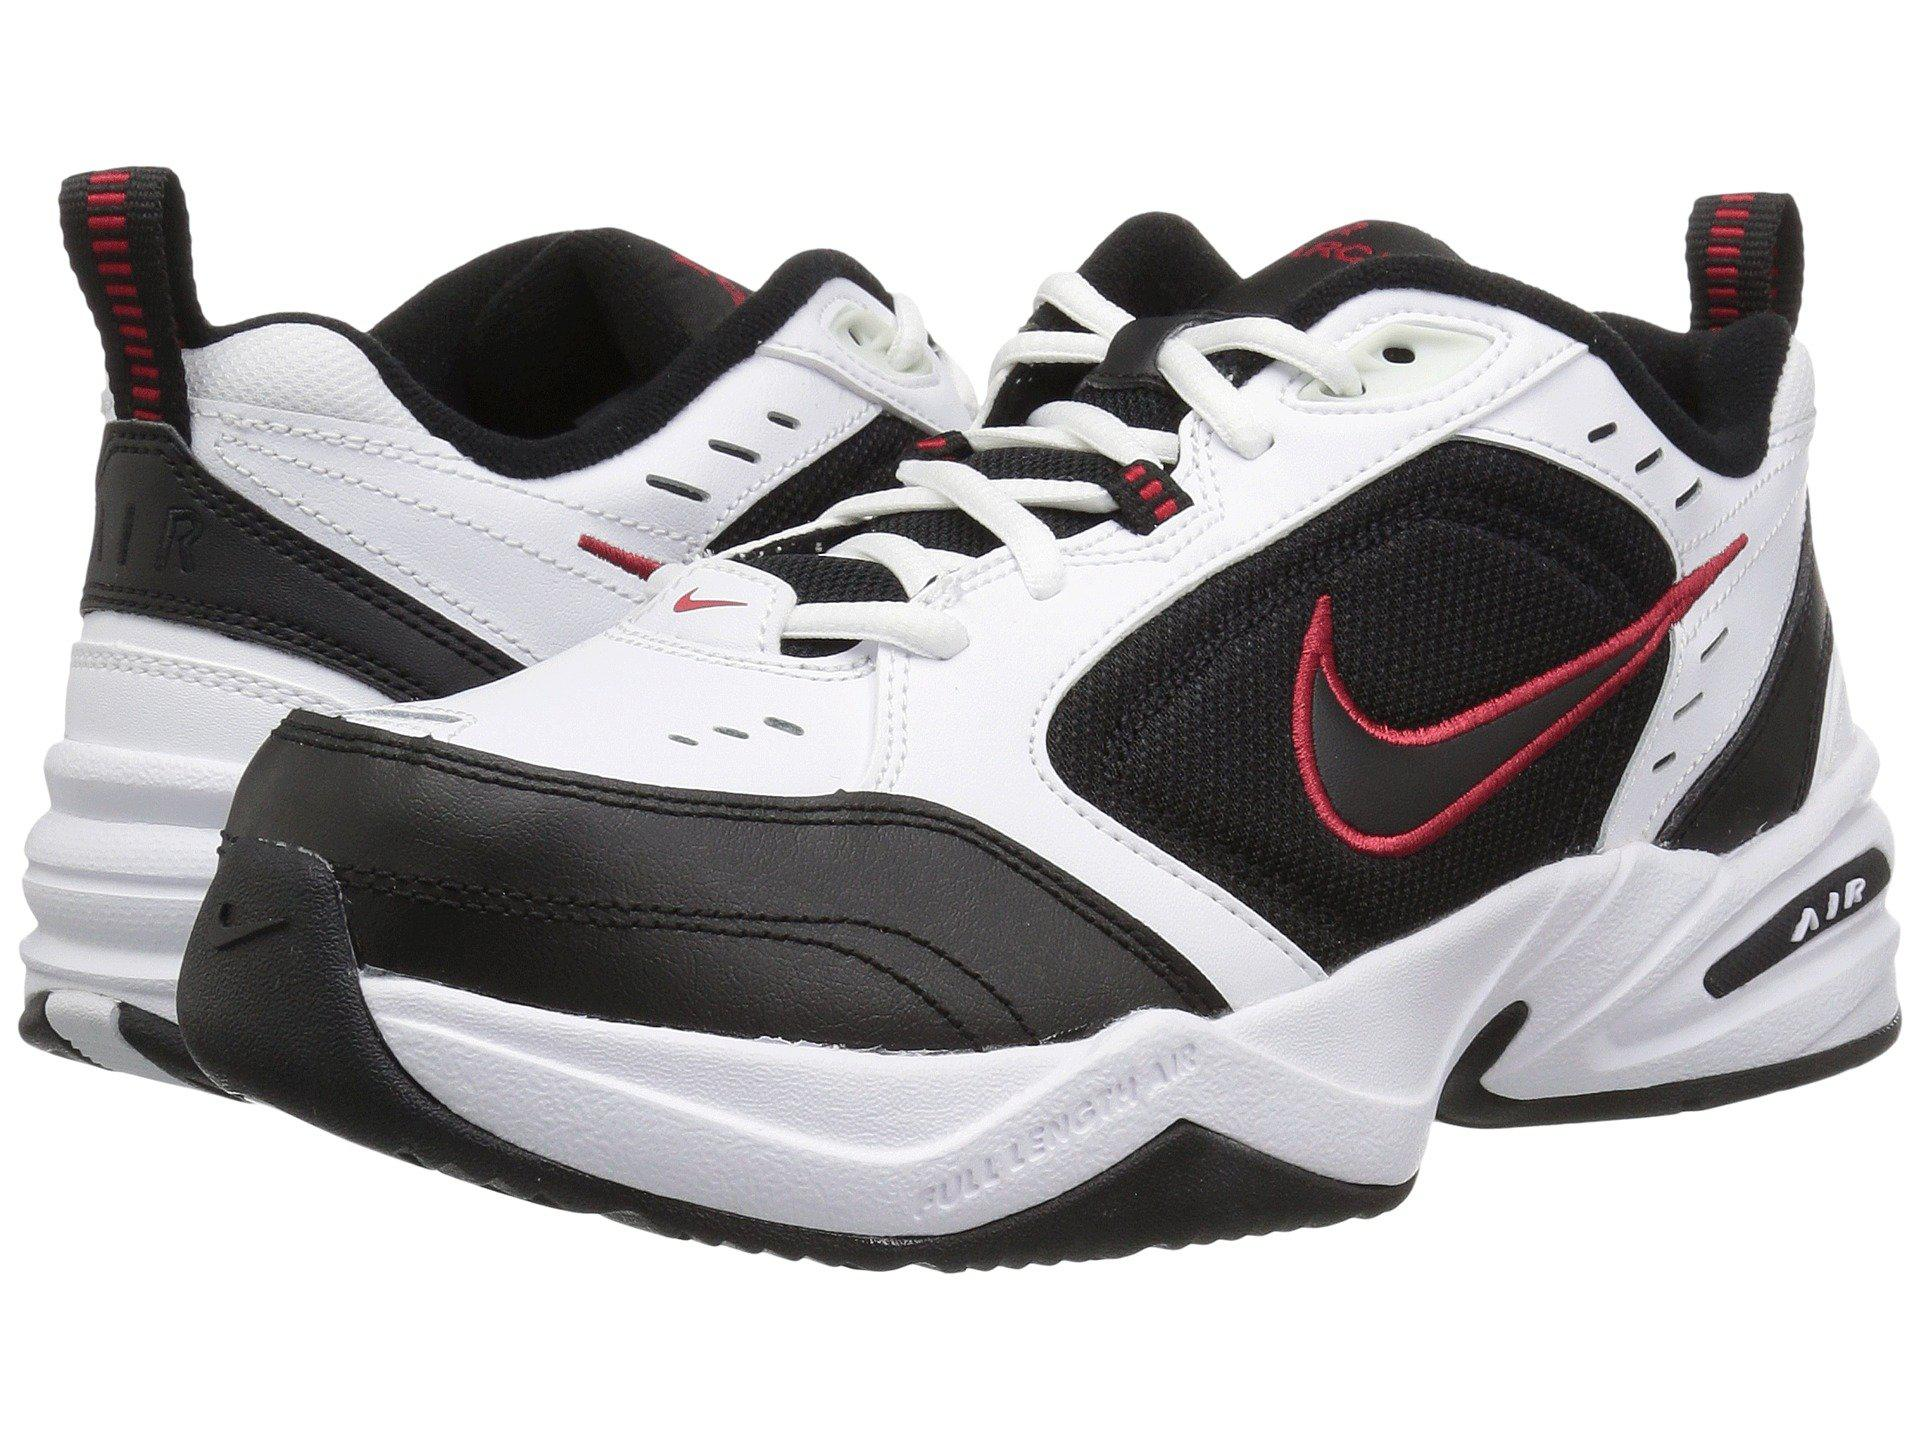 56d816ee646db3 Lyst - Nike Air Monarch Iv (black black) Men s Cross Training Shoes ...